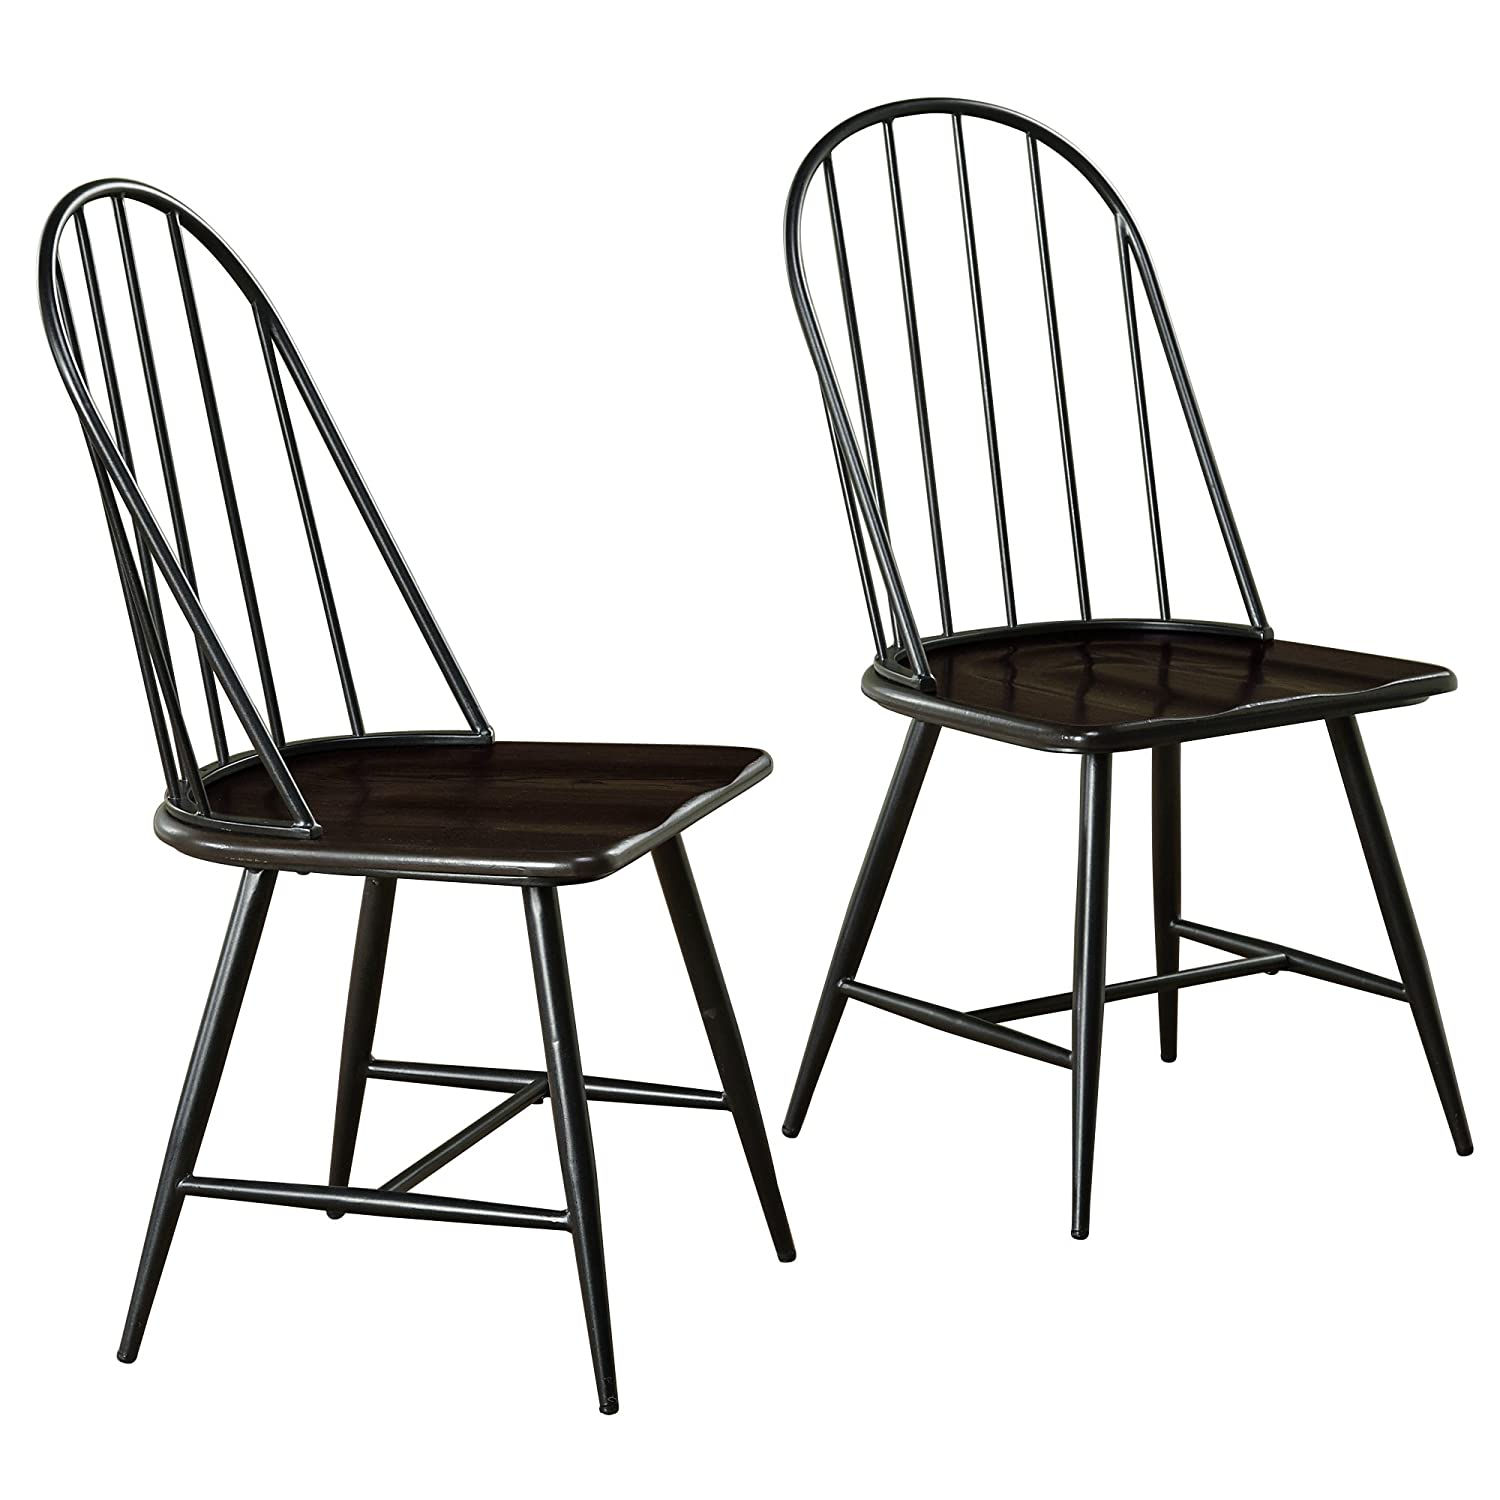 Target Marketing Systems Windsor Set of 2 Mixed Media Spindle Back Dining Chairs with Saddle Seat - Set of 2 - Black-